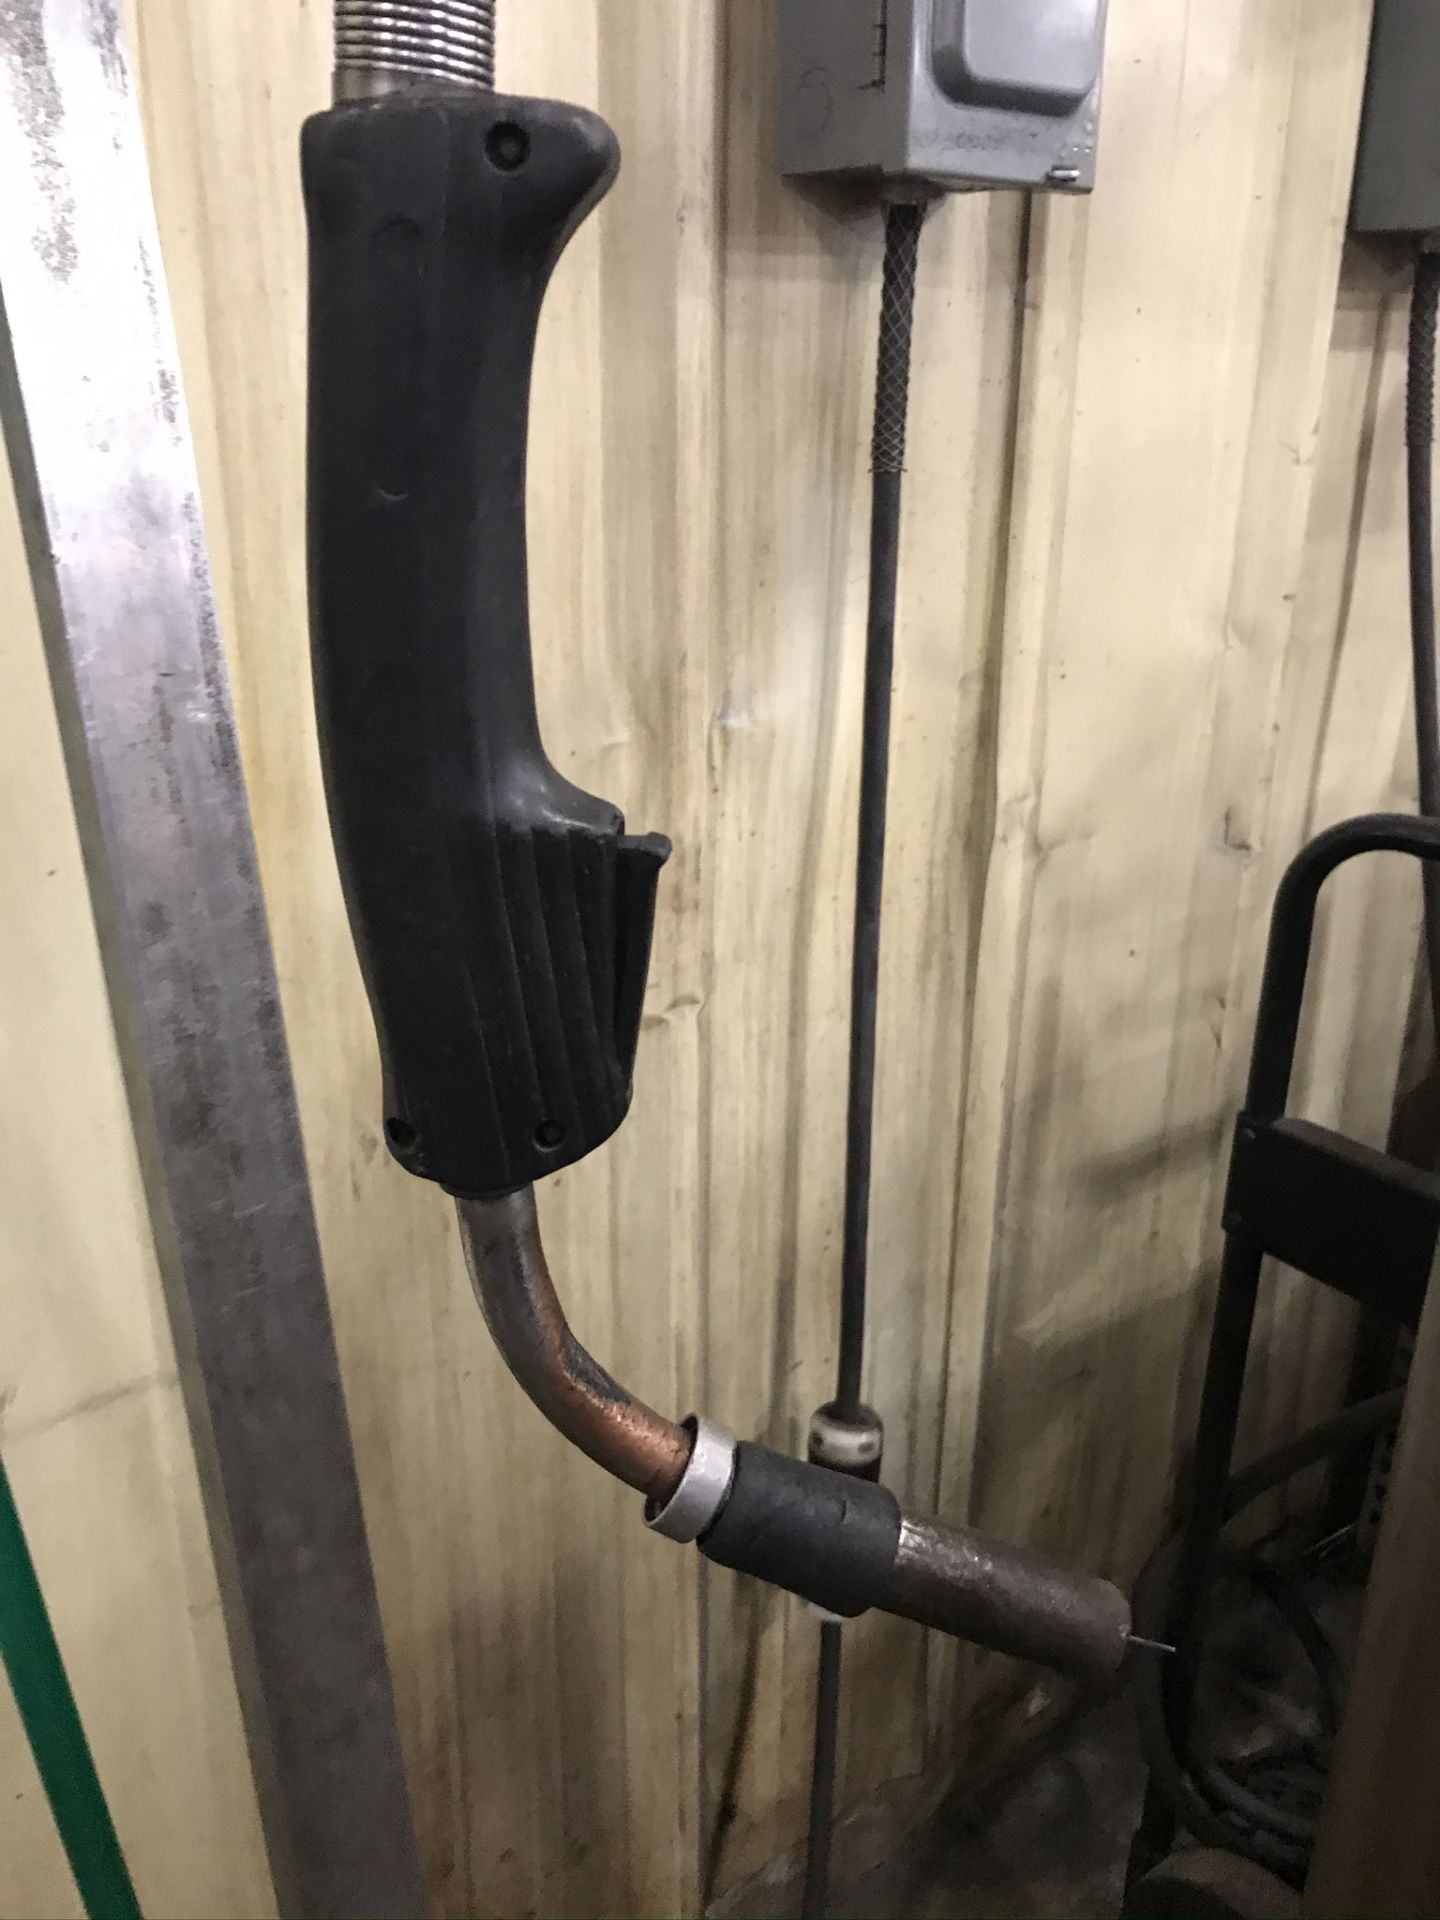 Lincoln Power Wave 455 Welder Complete with Welding Boom Arm and Lincoln Power Feed - Image 7 of 7